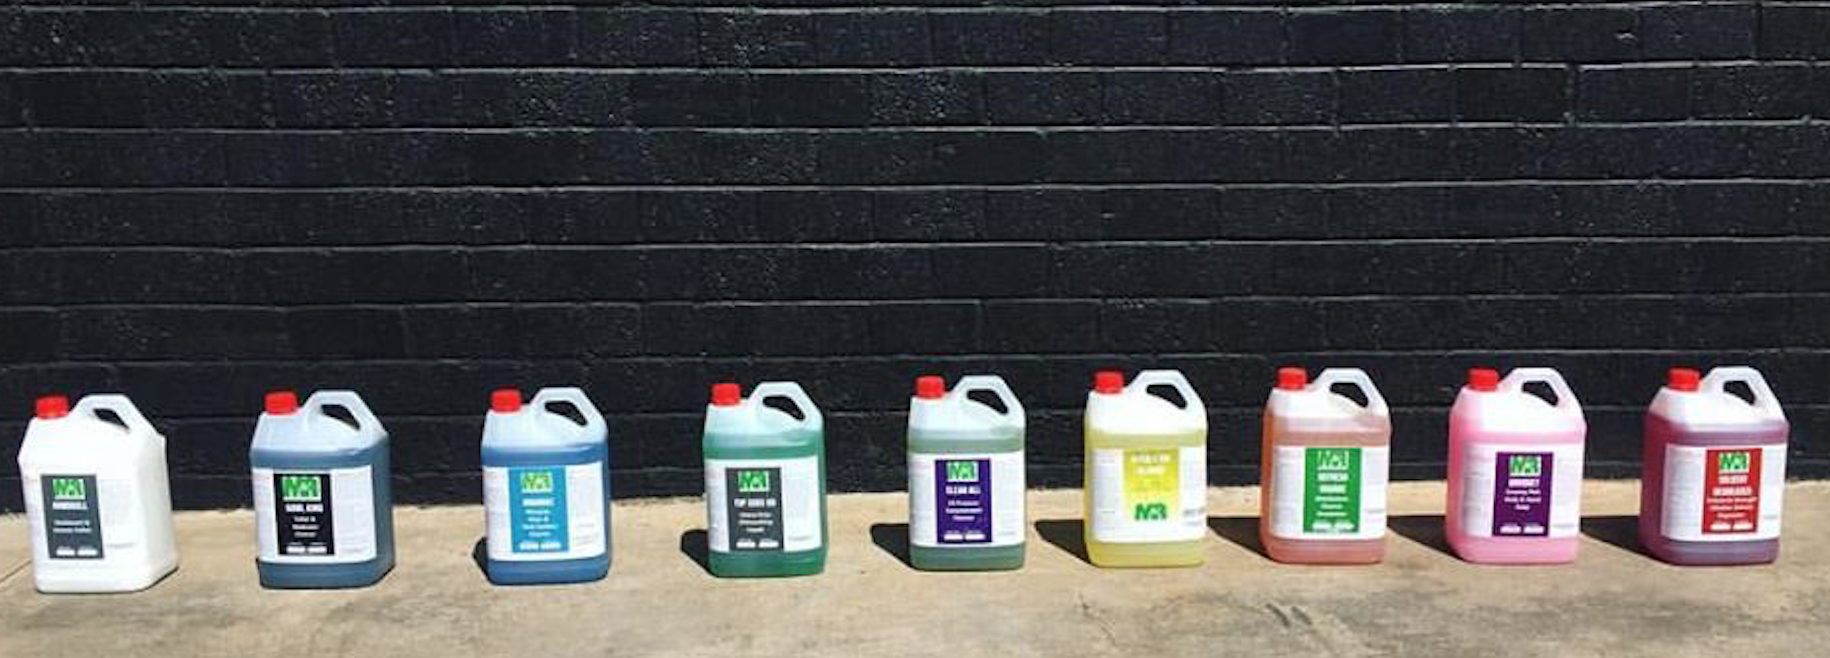 Greases Amp Cleaning Detergent Suppliers Geelong M Amp R